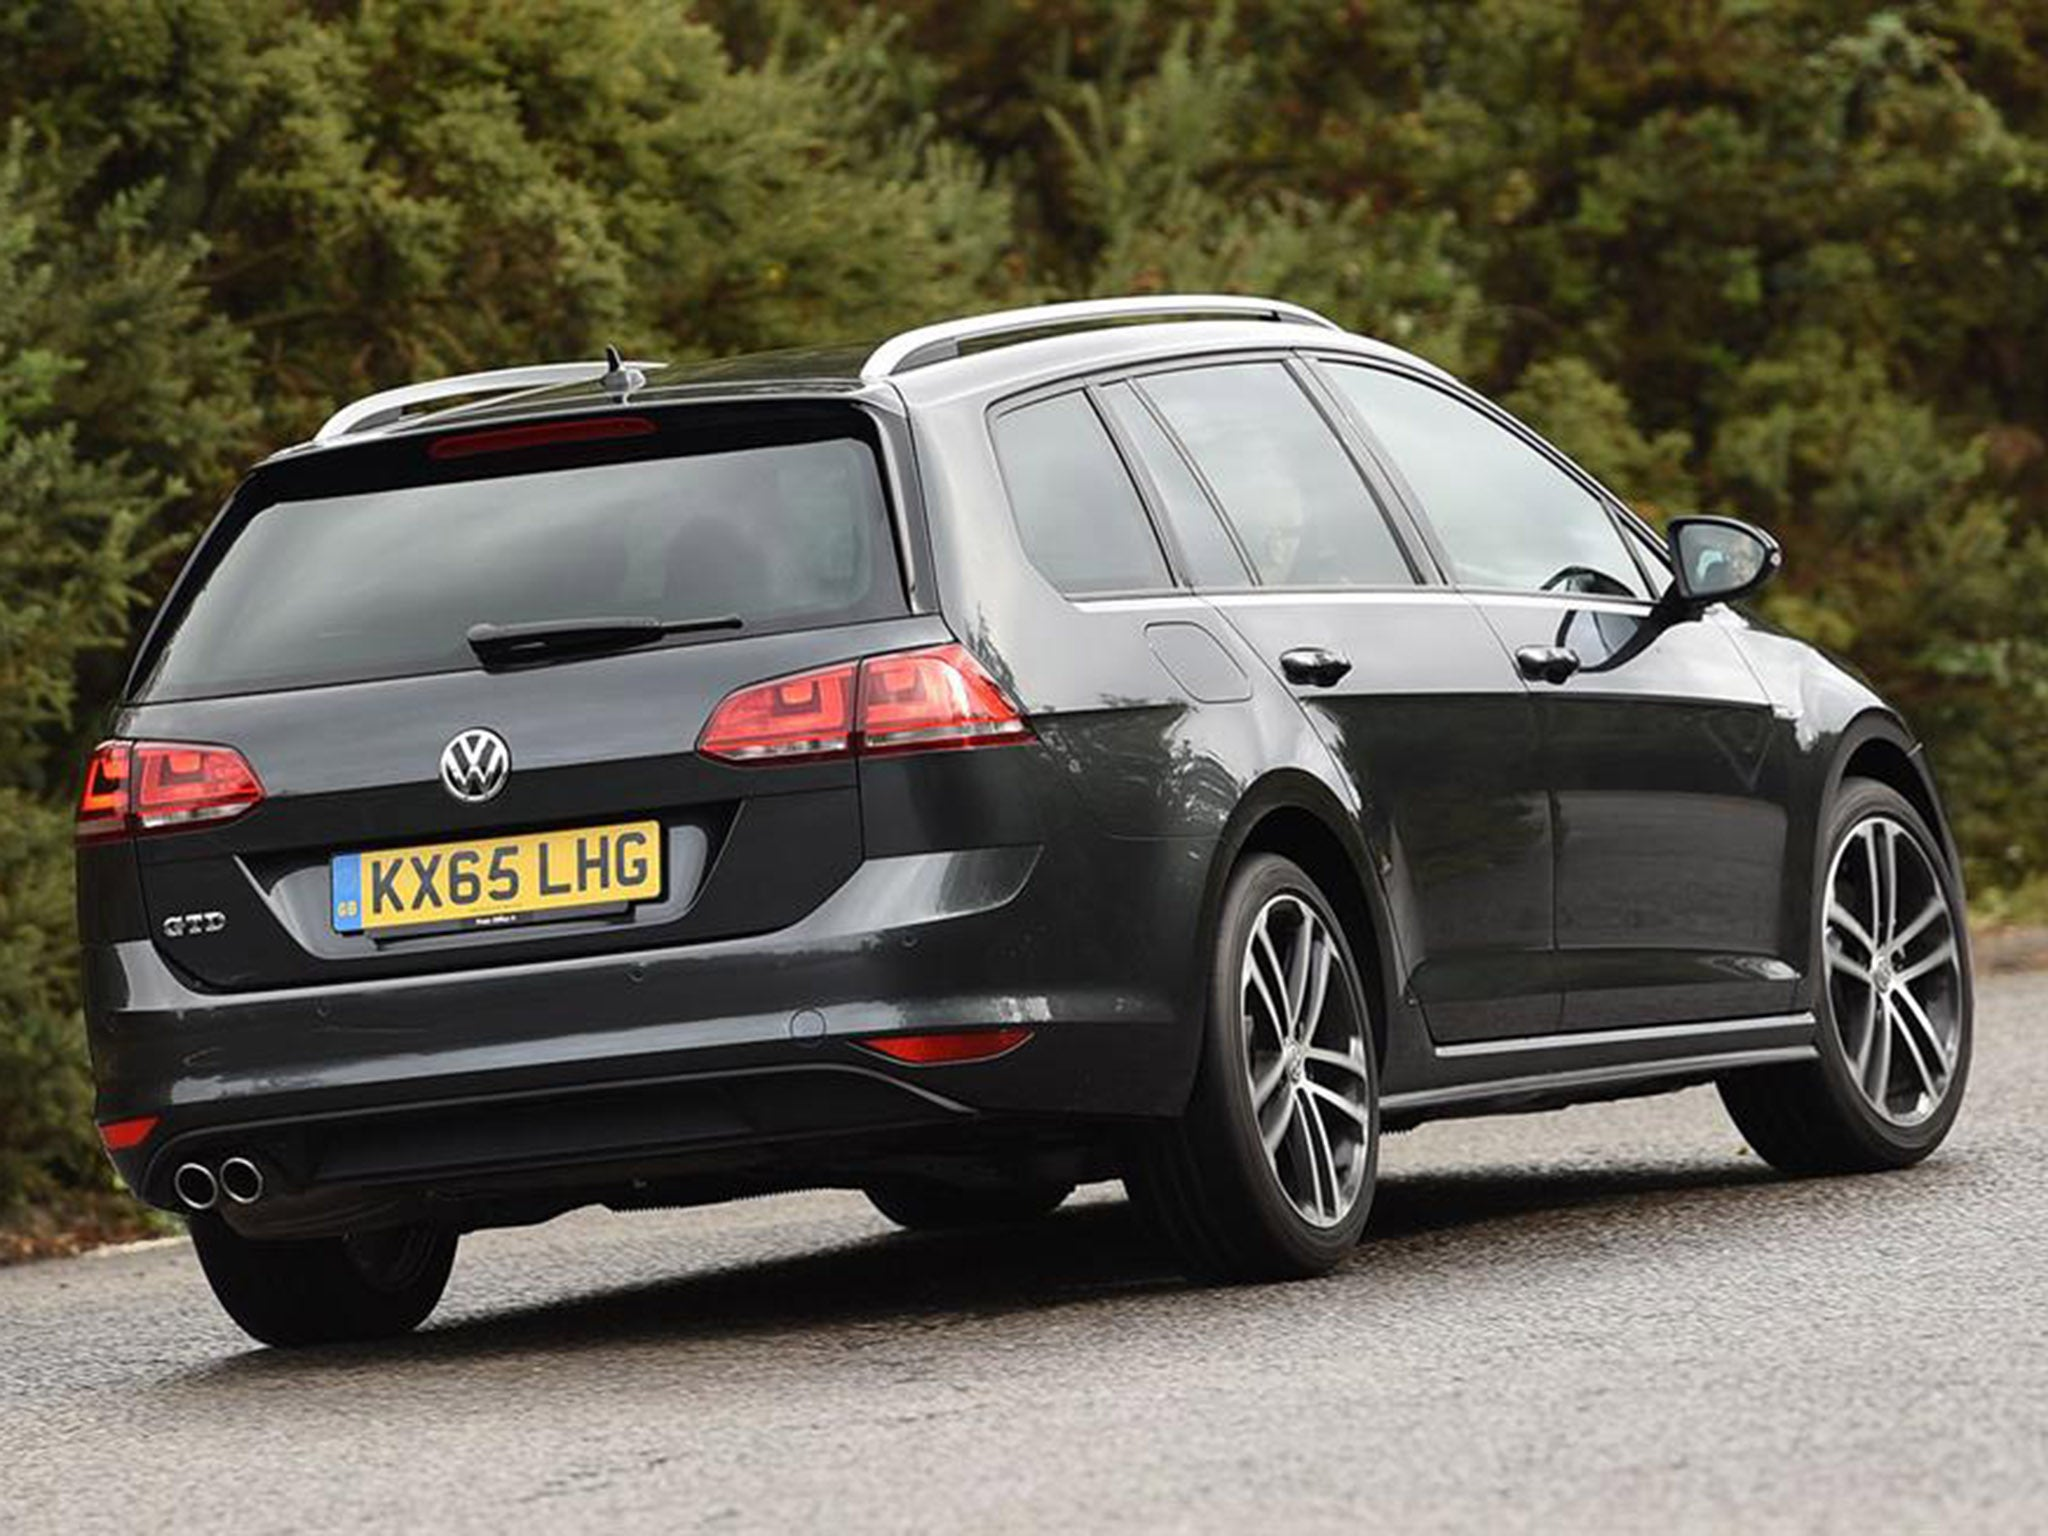 Volkswagen Golf GTD Estate, car review: Practicality allied with efficiency and hot-hatch ...